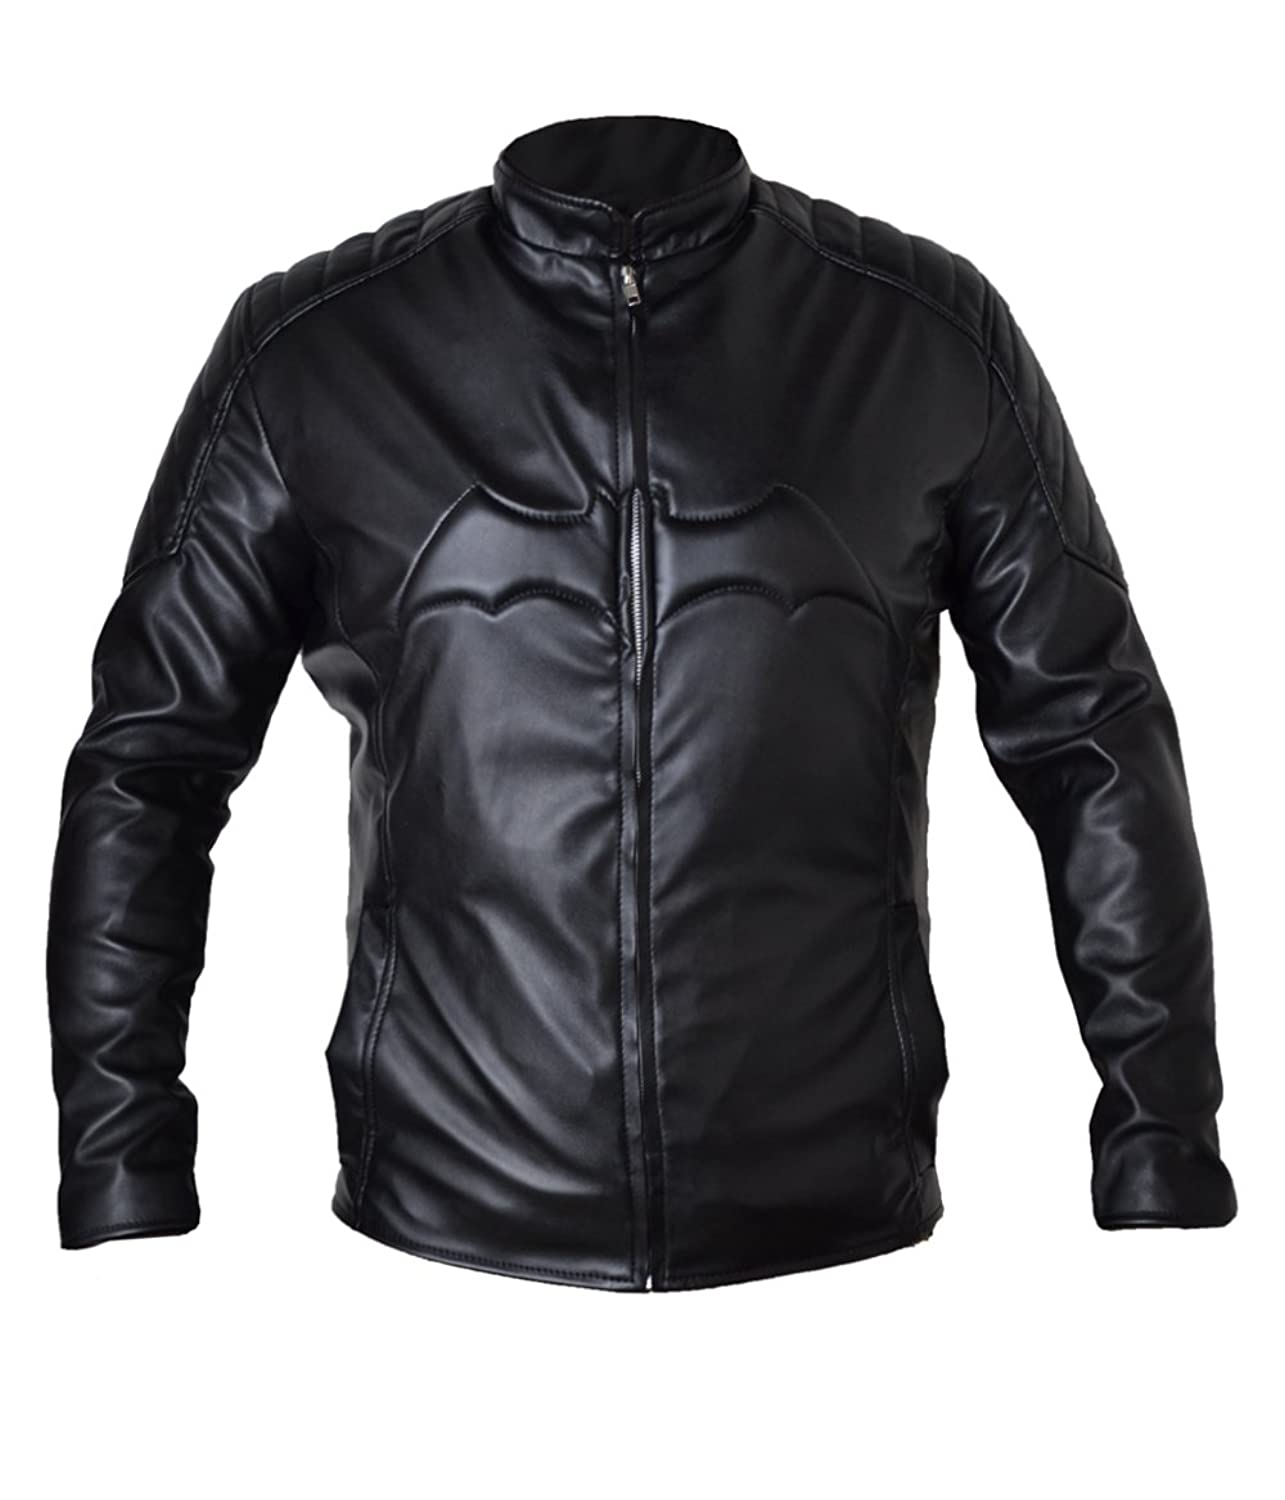 Dark Knight Batman Full Black bale Real Sheep Leather Leather Jacket With Bat Logo on Chest